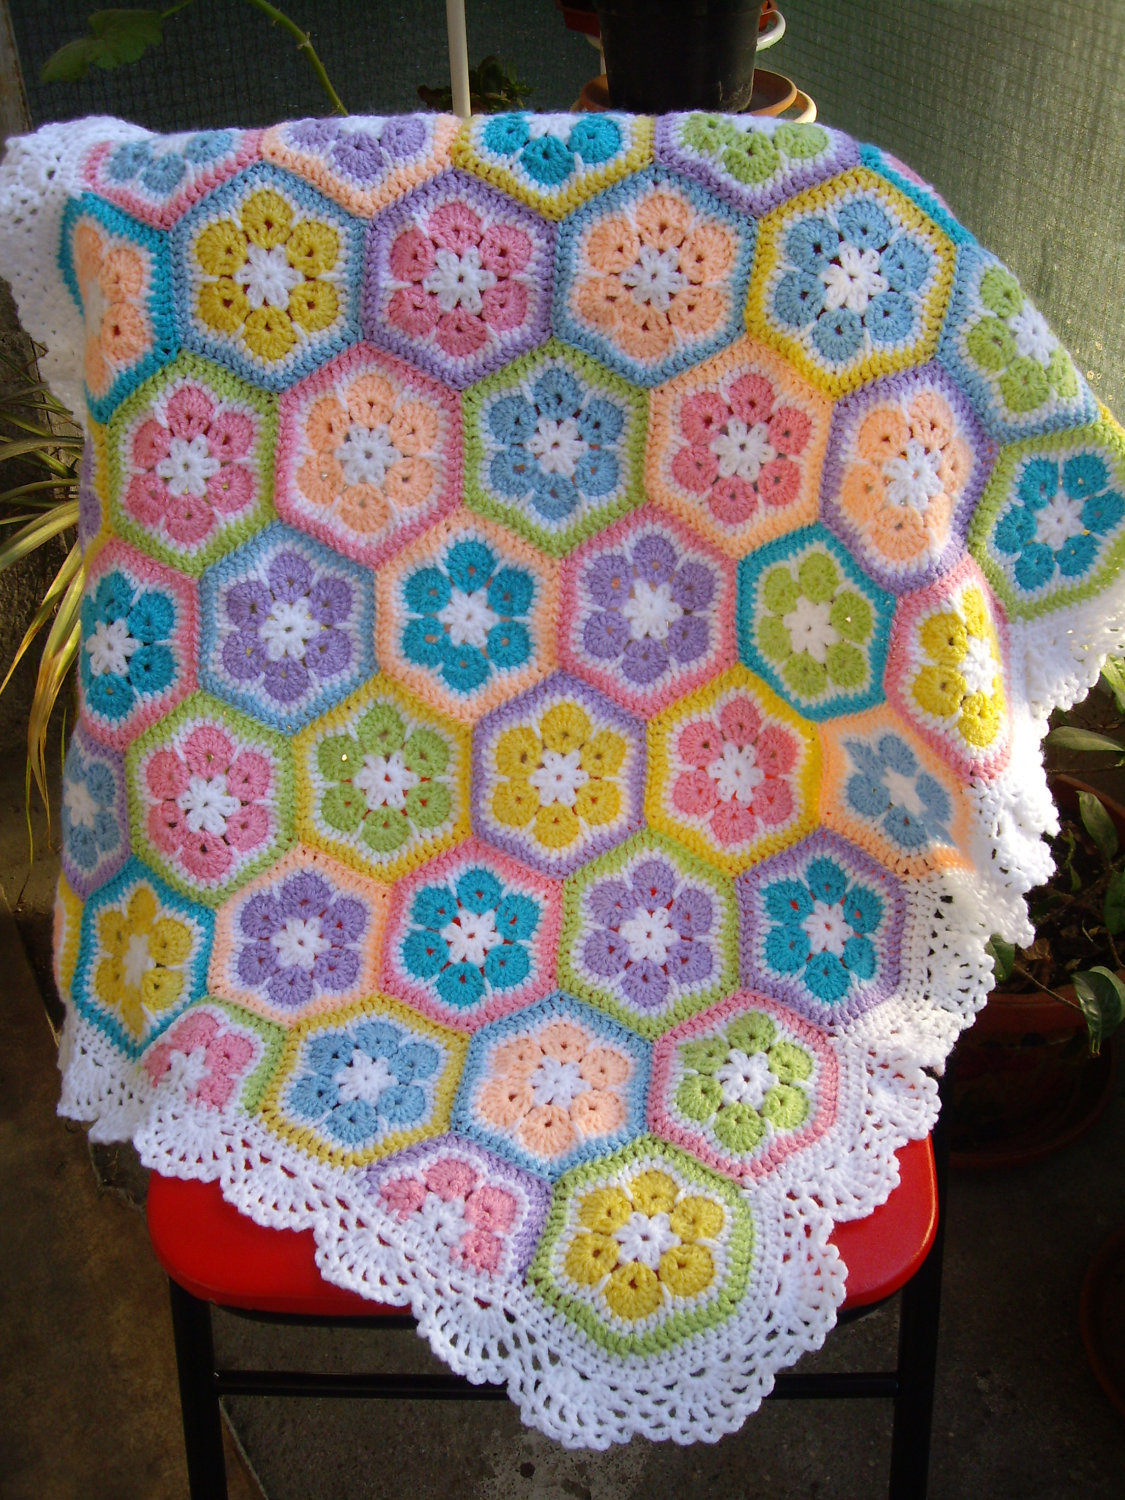 Crocheting A Baby Quilt : Blanket-baby-crochet-blanket-colorful-knitting-patchwork-afghan.jpg